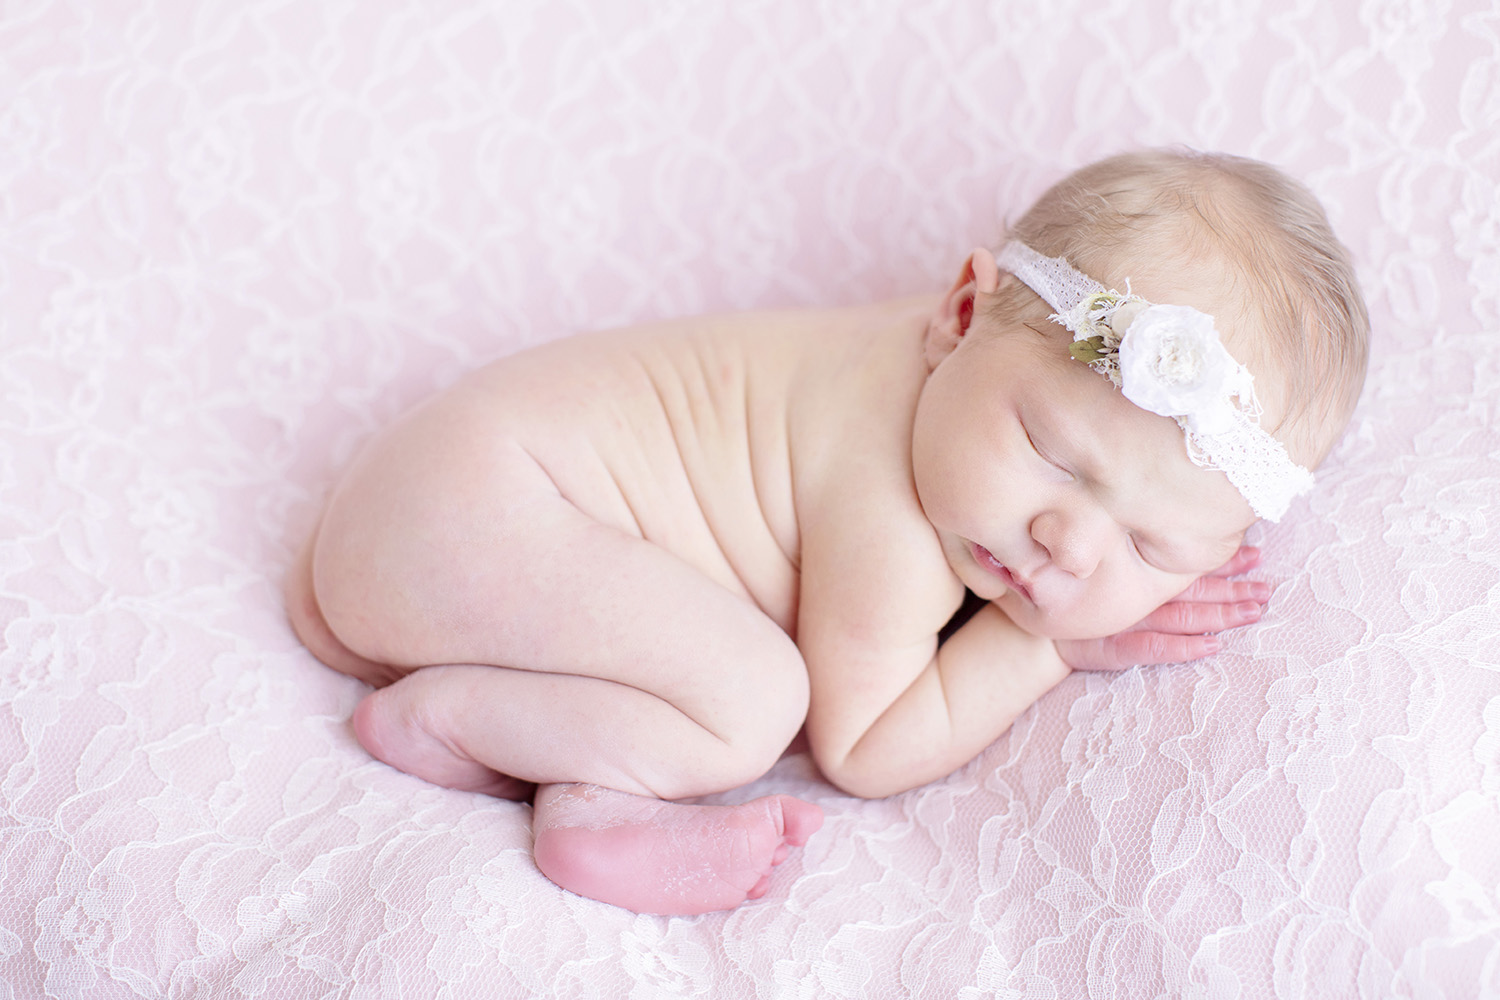 swetman-photography-newborn-photographer-ocean-springs-mississippi-lace.jpg